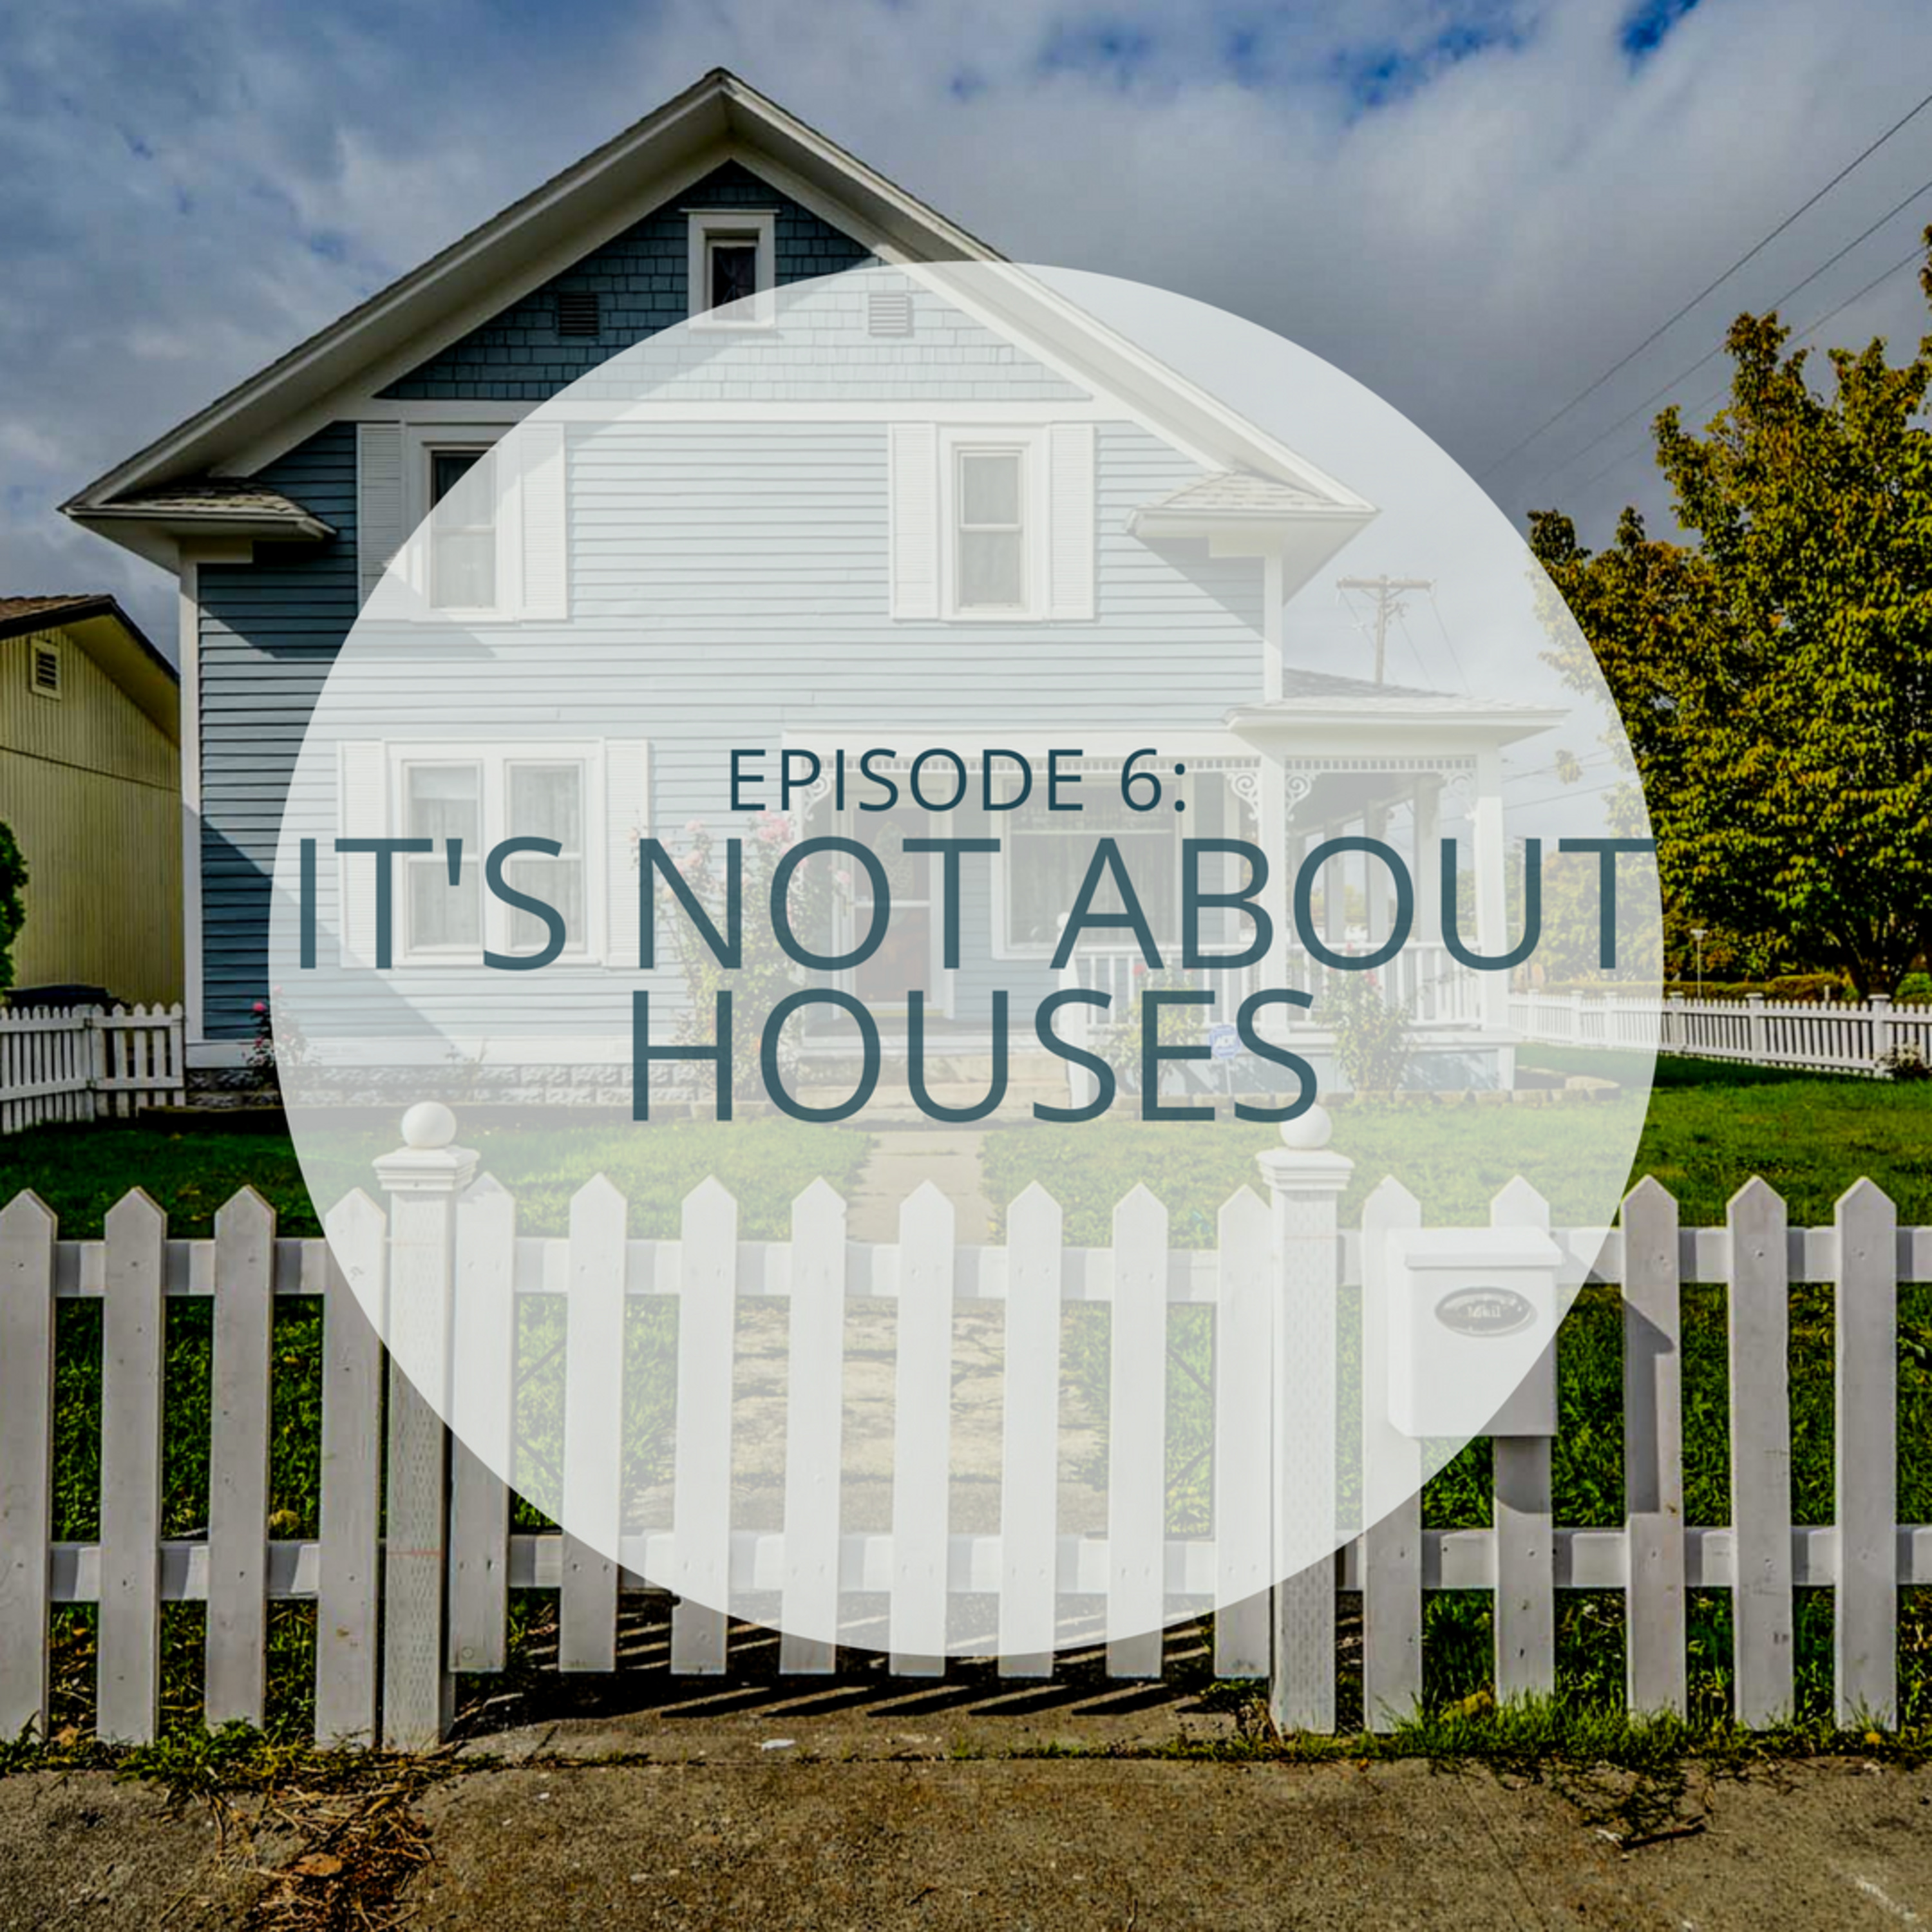 It's Not About Houses